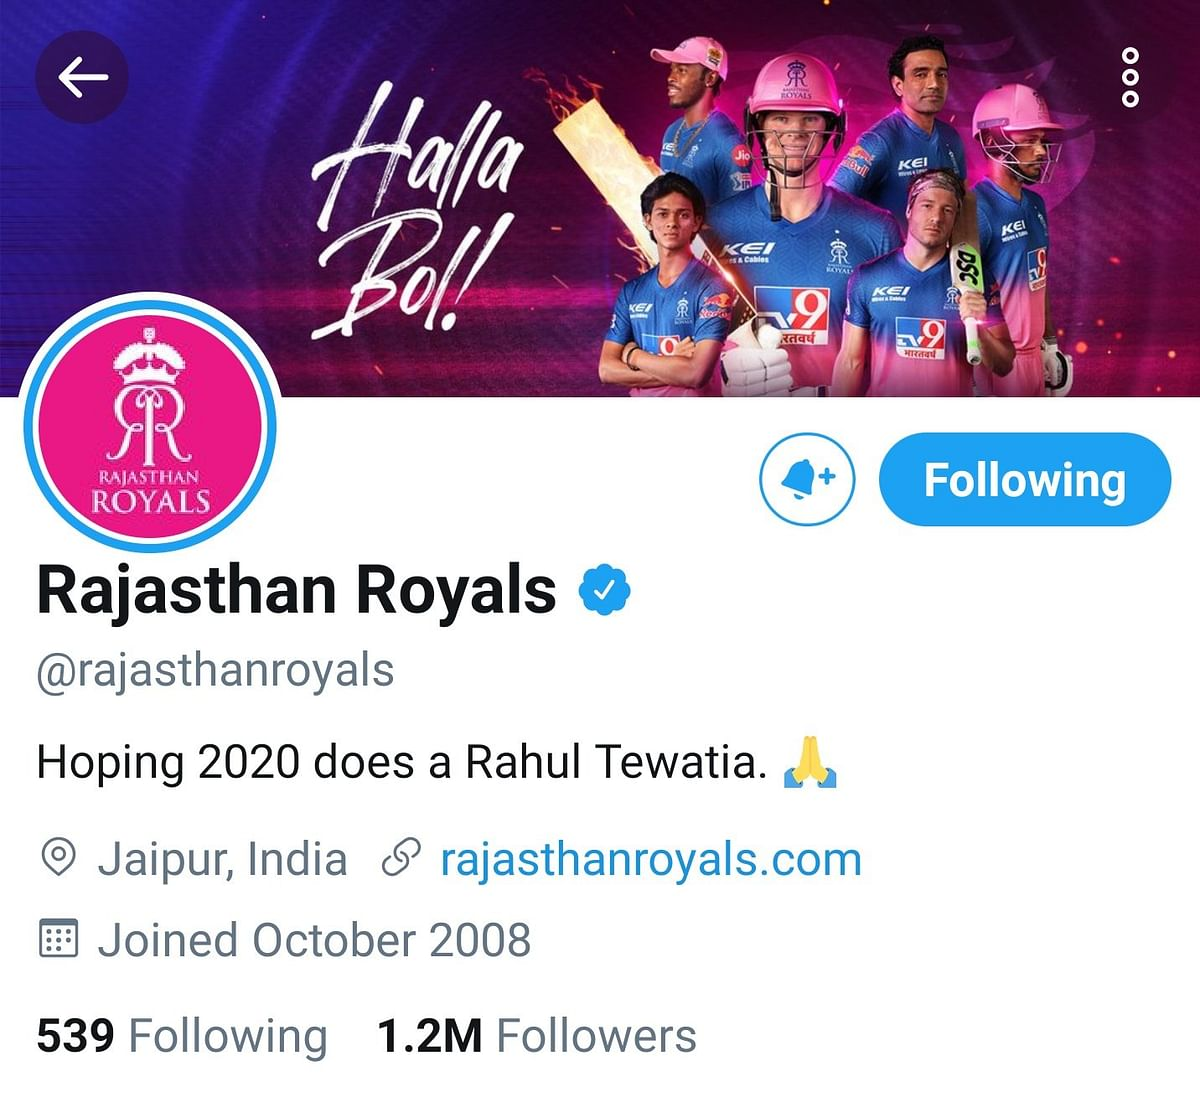 'Hoping 2020 does a Rahul Tewatia': Rajasthan Royals' on point Twitter bio